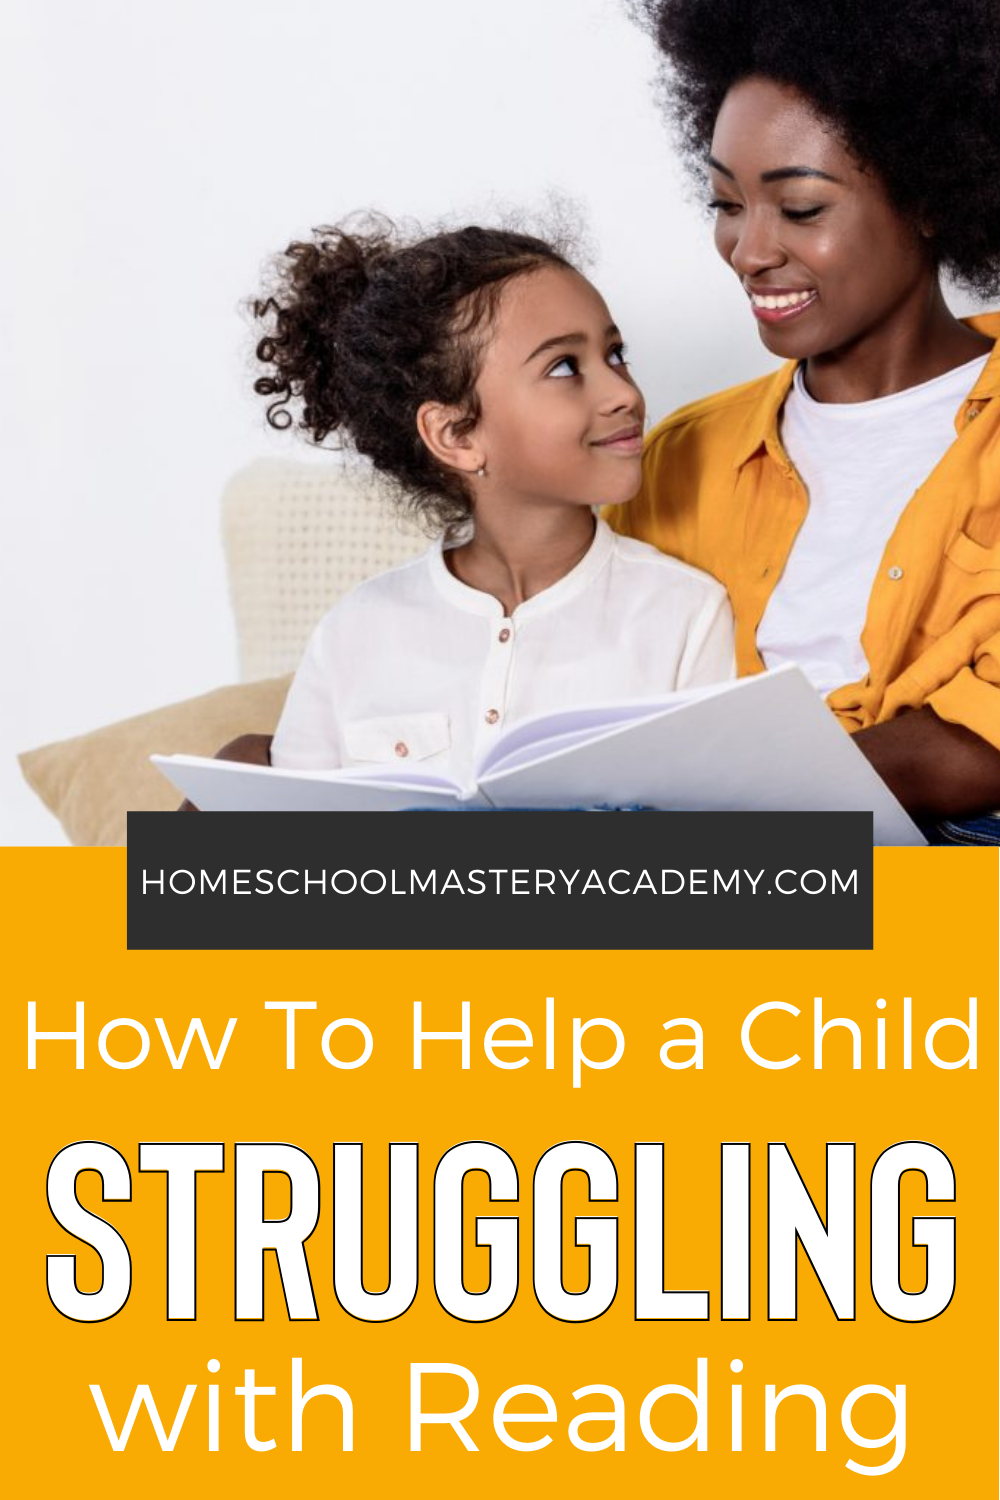 How to Help a Child Struggling with Reading - Tips, Ideas and Gifts to Encourage Them! #homeschool #learntoread #homeschooltips #reading